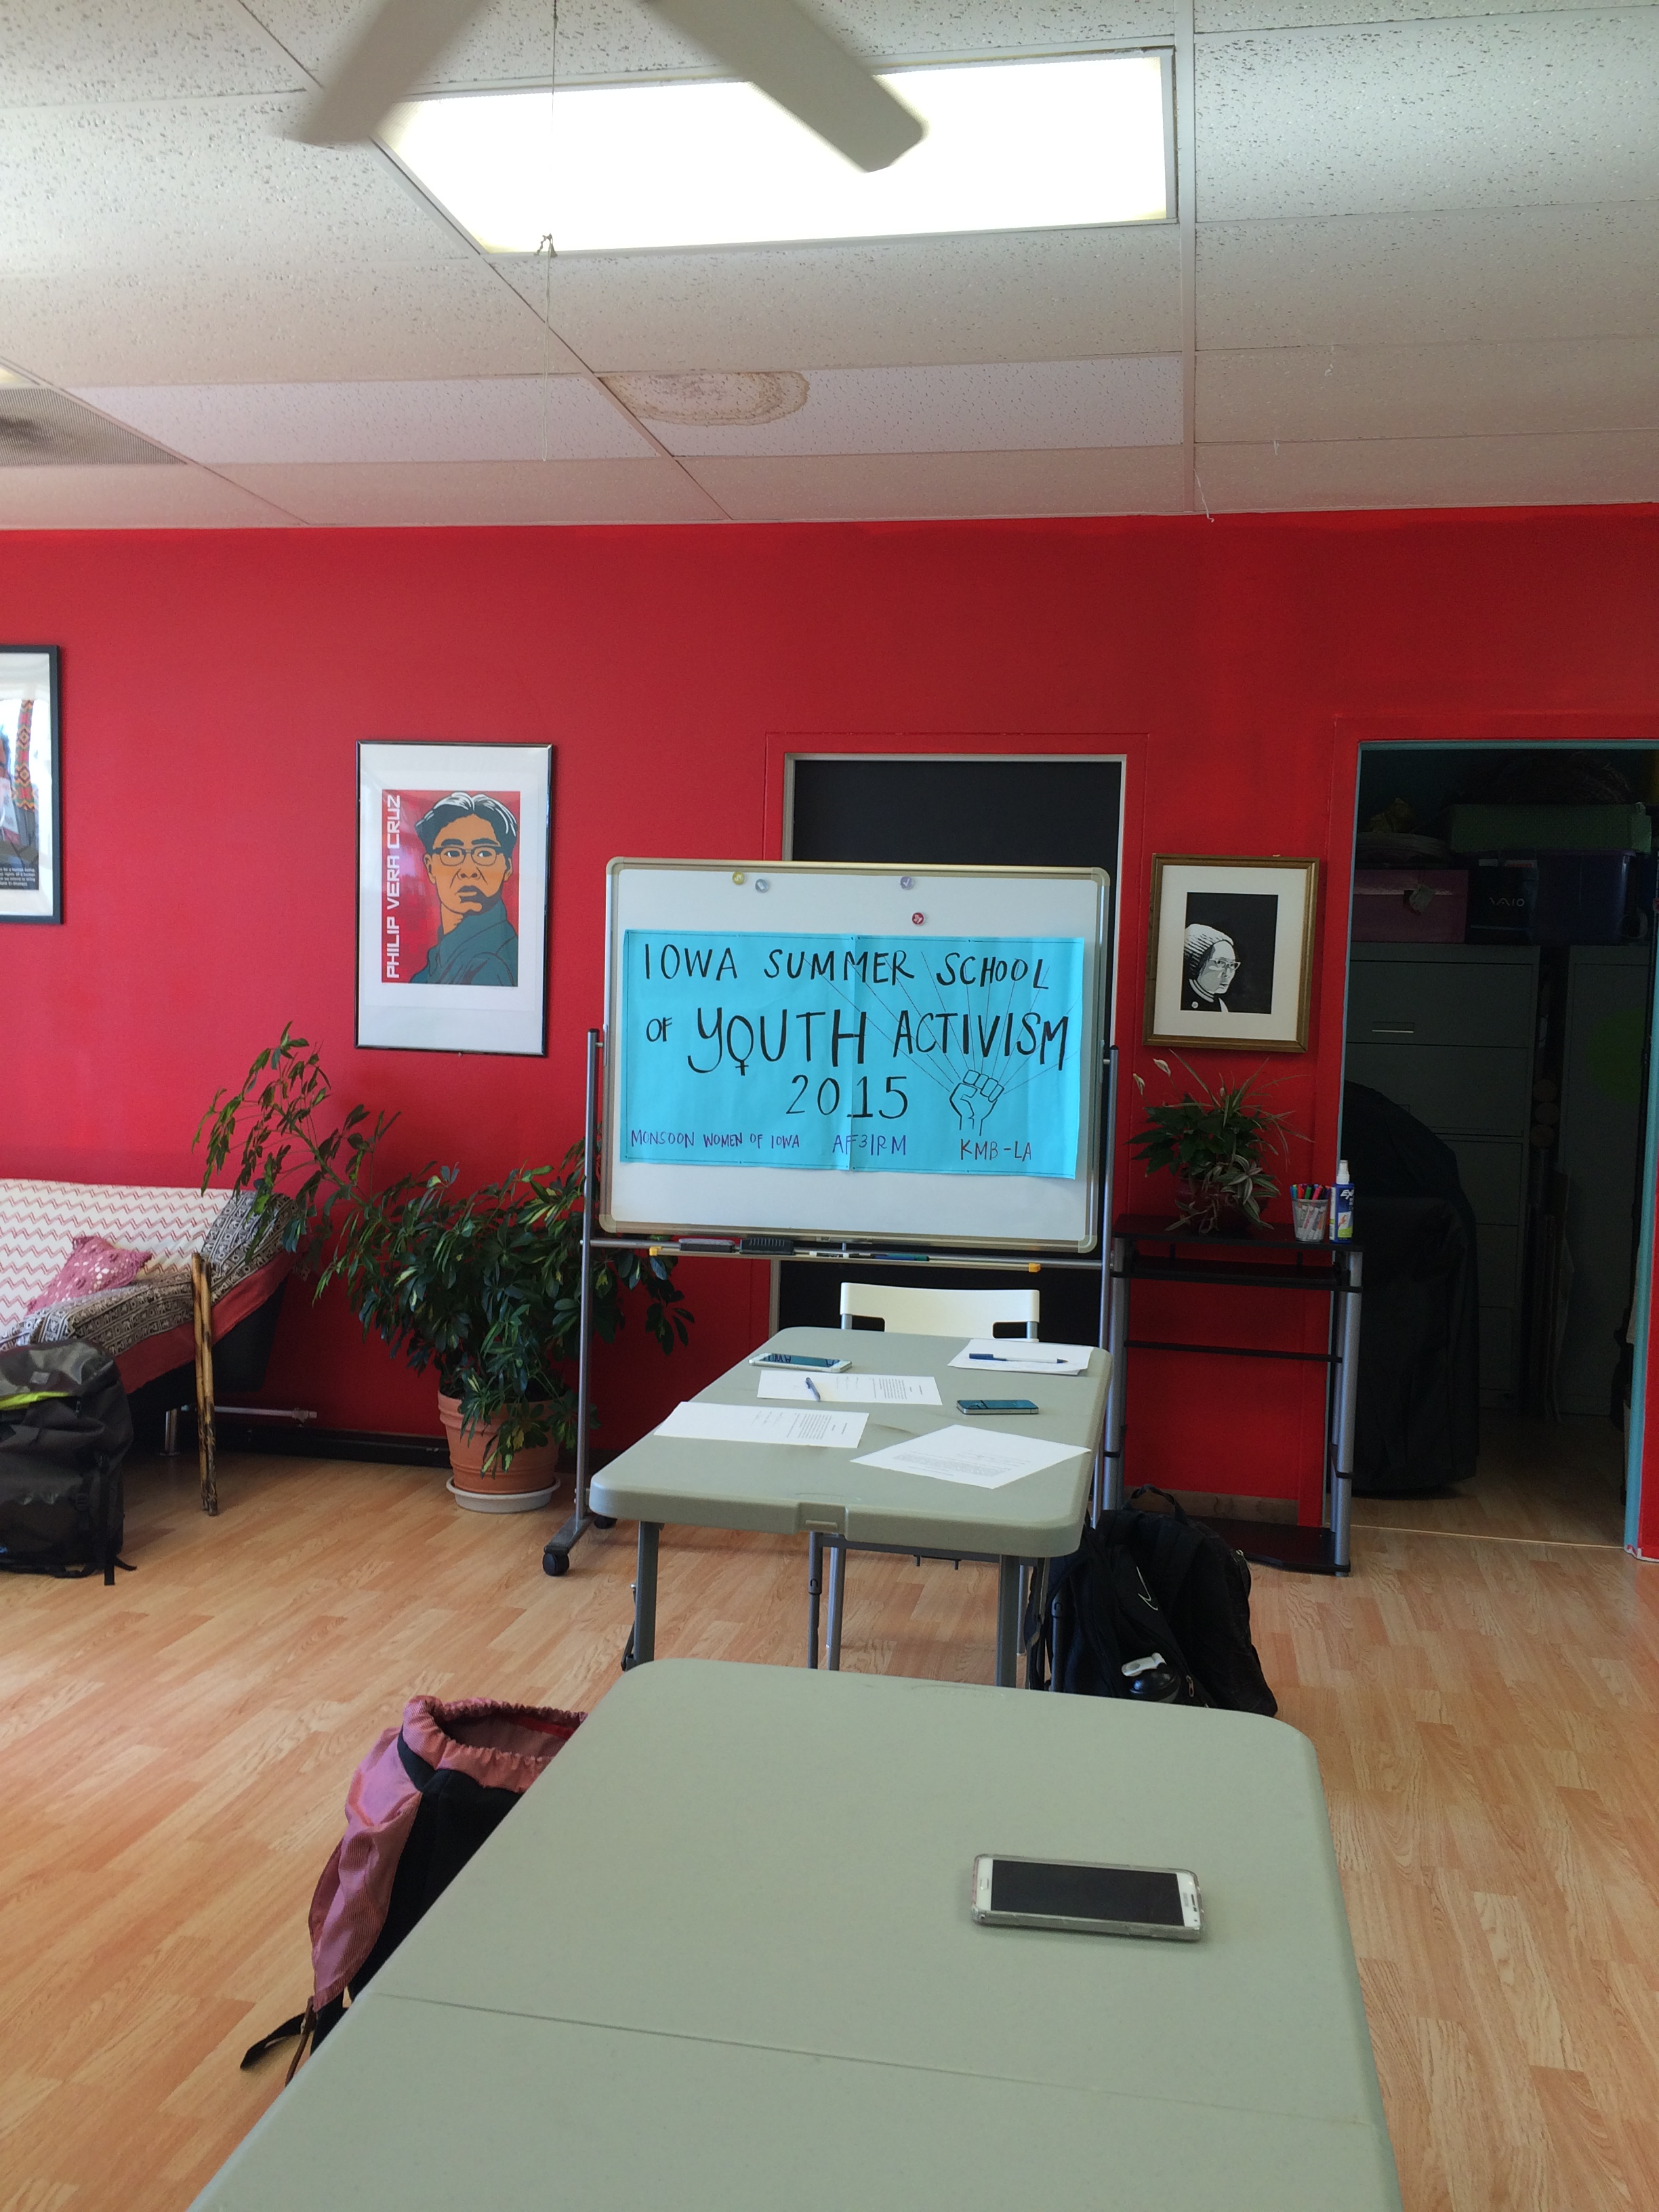 Summer School of Youth Activism